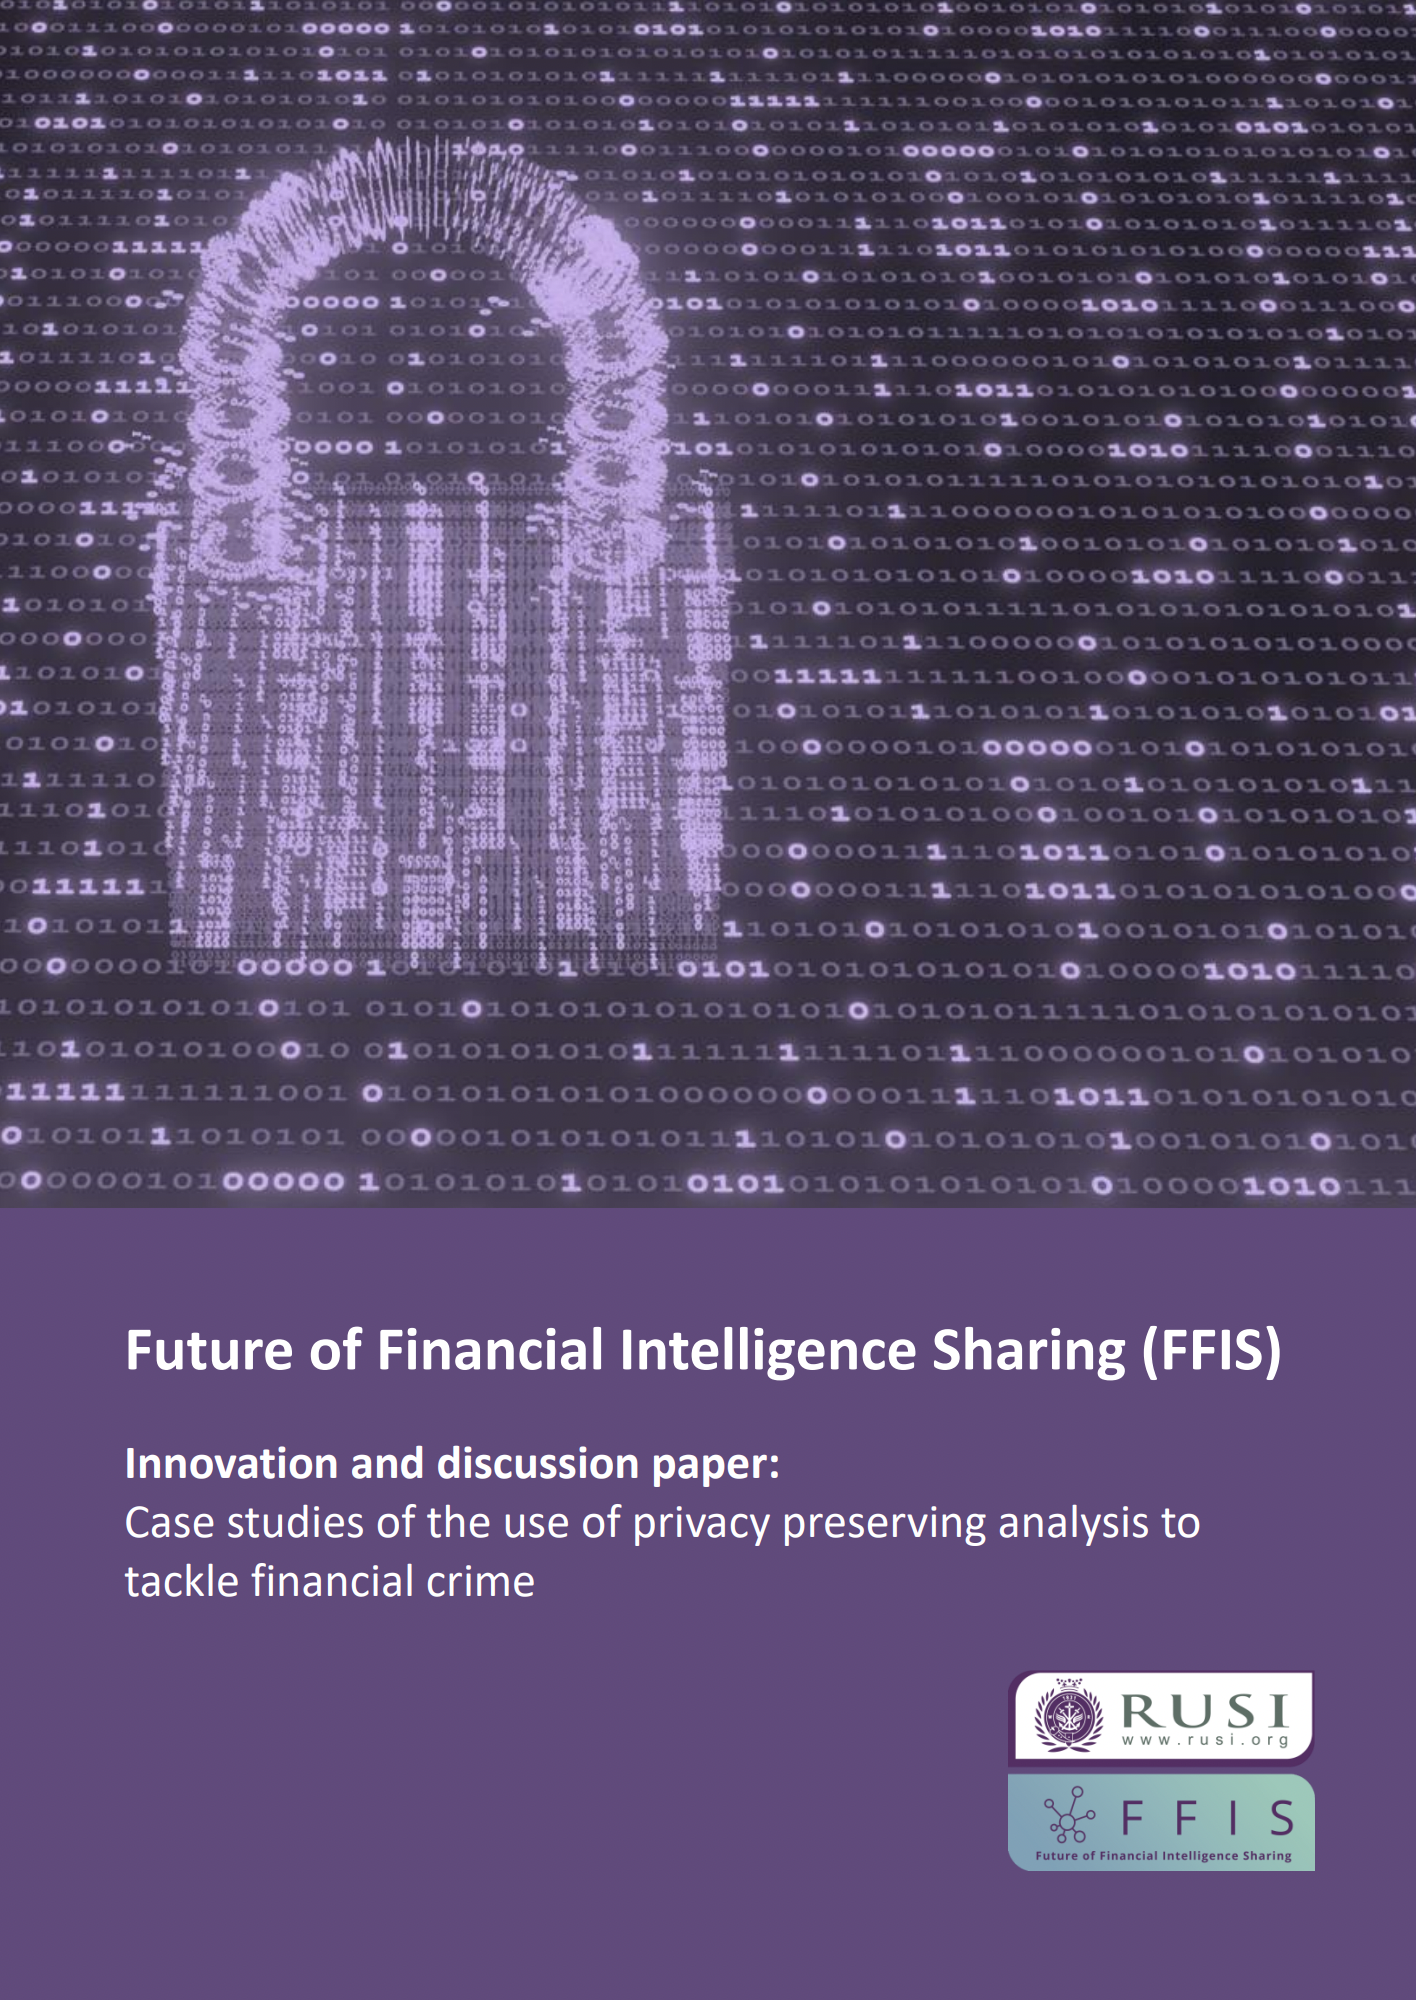 Case studies of the use of privacy preserving analysis to tackle financial crime